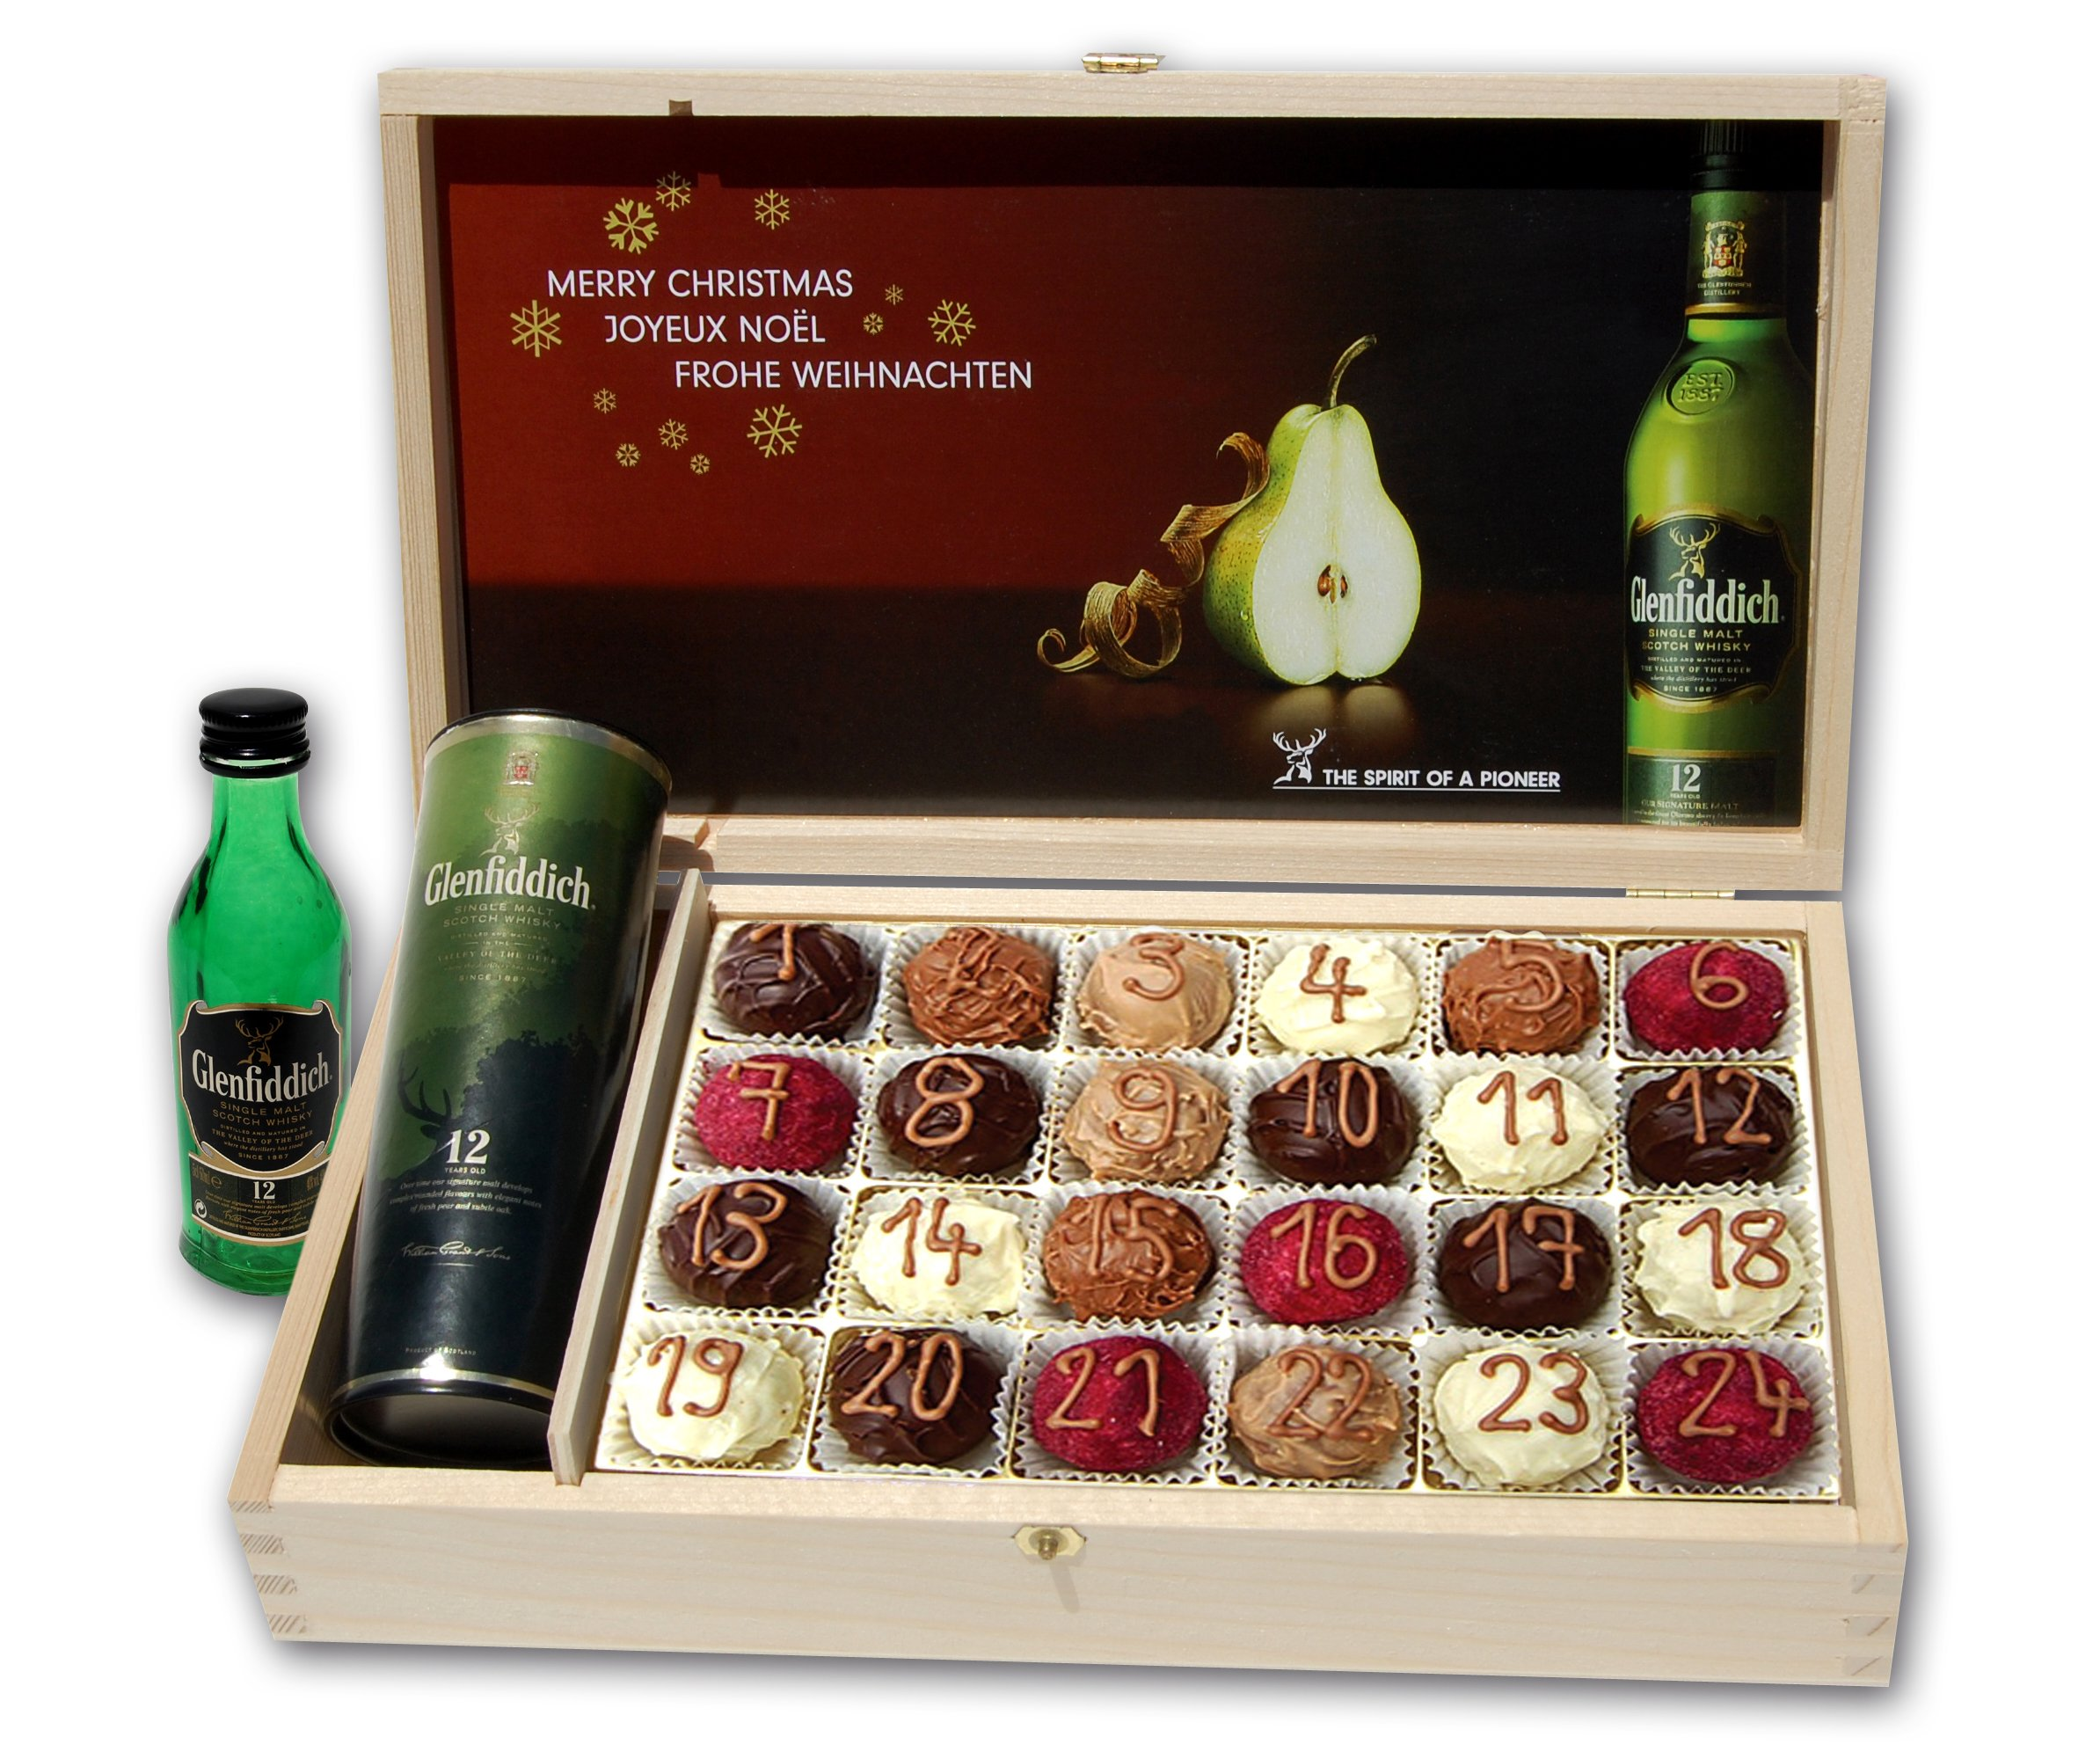 werbeartikel discounter glenfiddich whiskey domino adventskalender marzipan schokolade. Black Bedroom Furniture Sets. Home Design Ideas